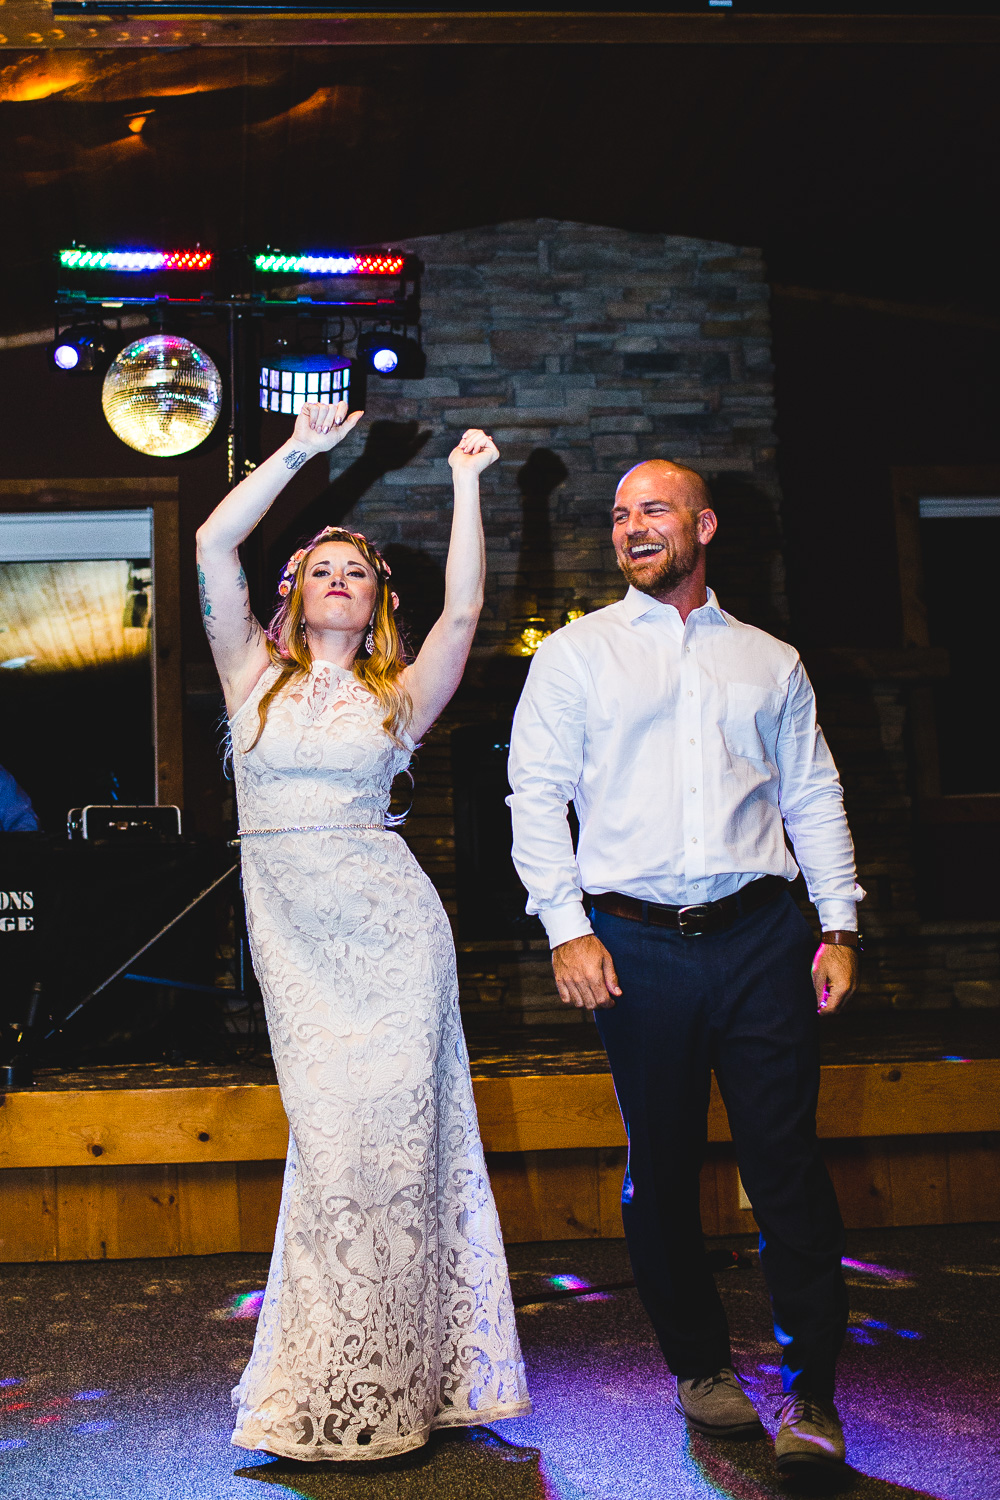 Epic first dance bride and groom destination wedding reception